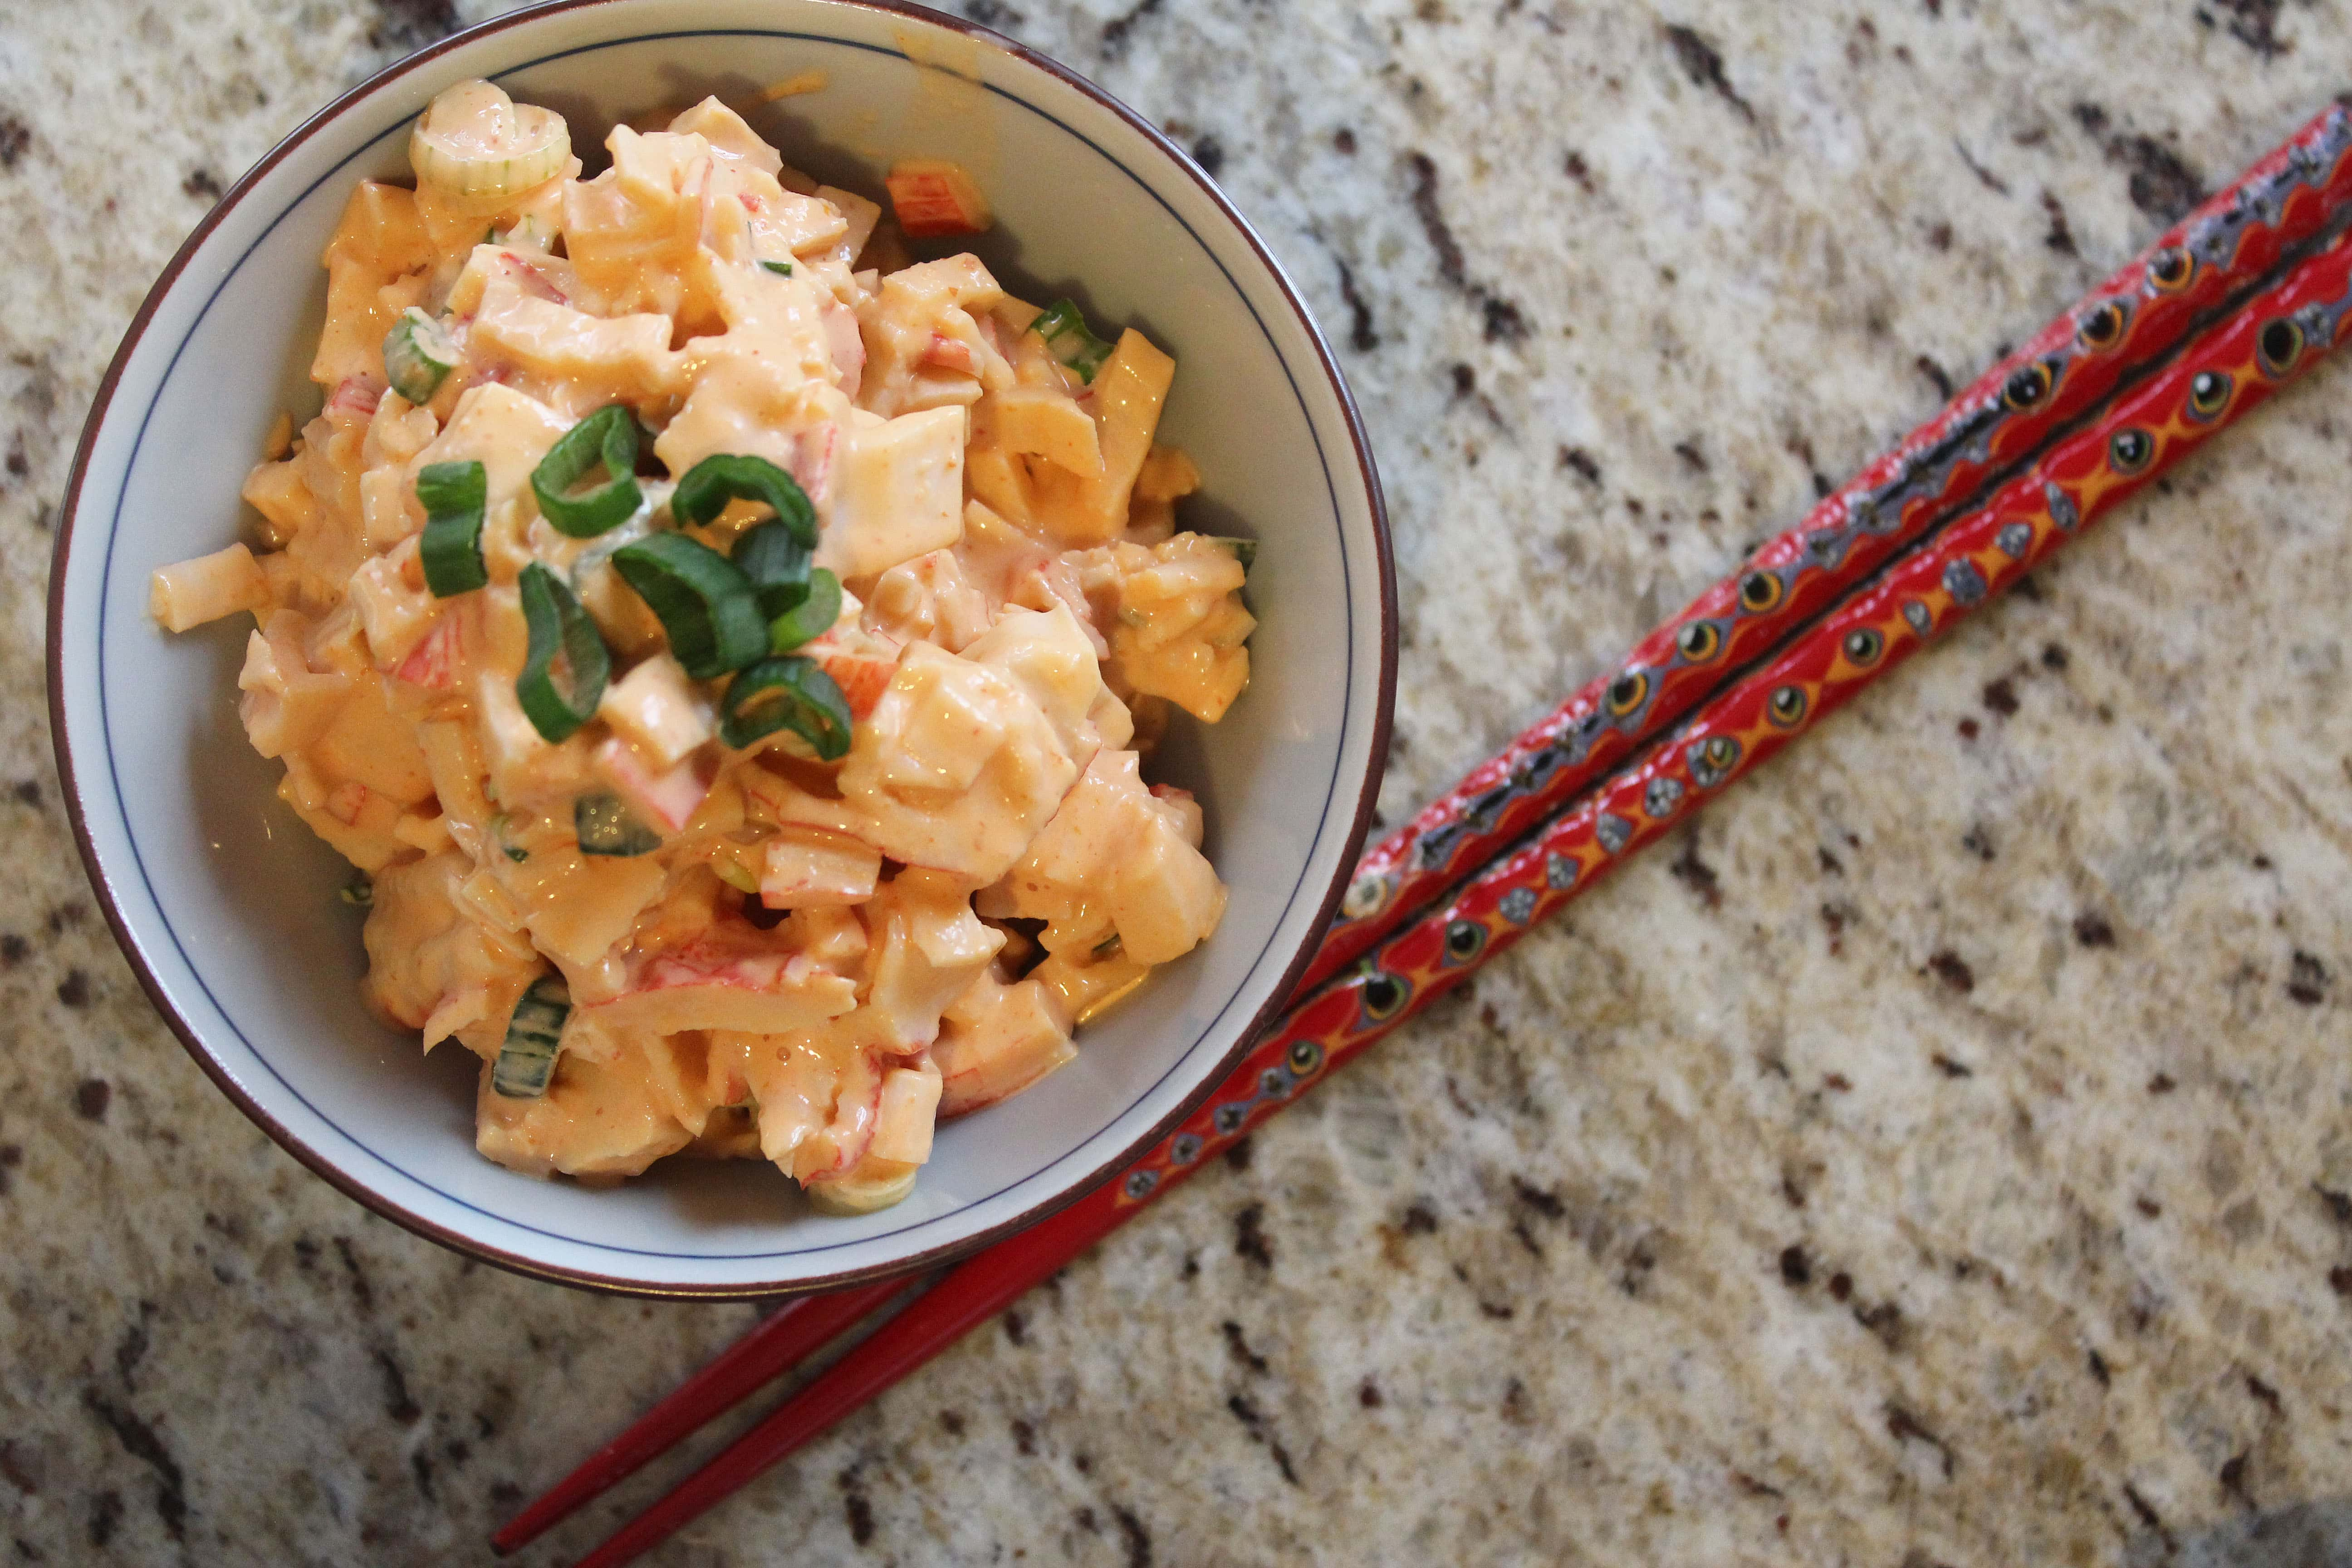 Yummy Spicy Food Recipes Salad With Hashi